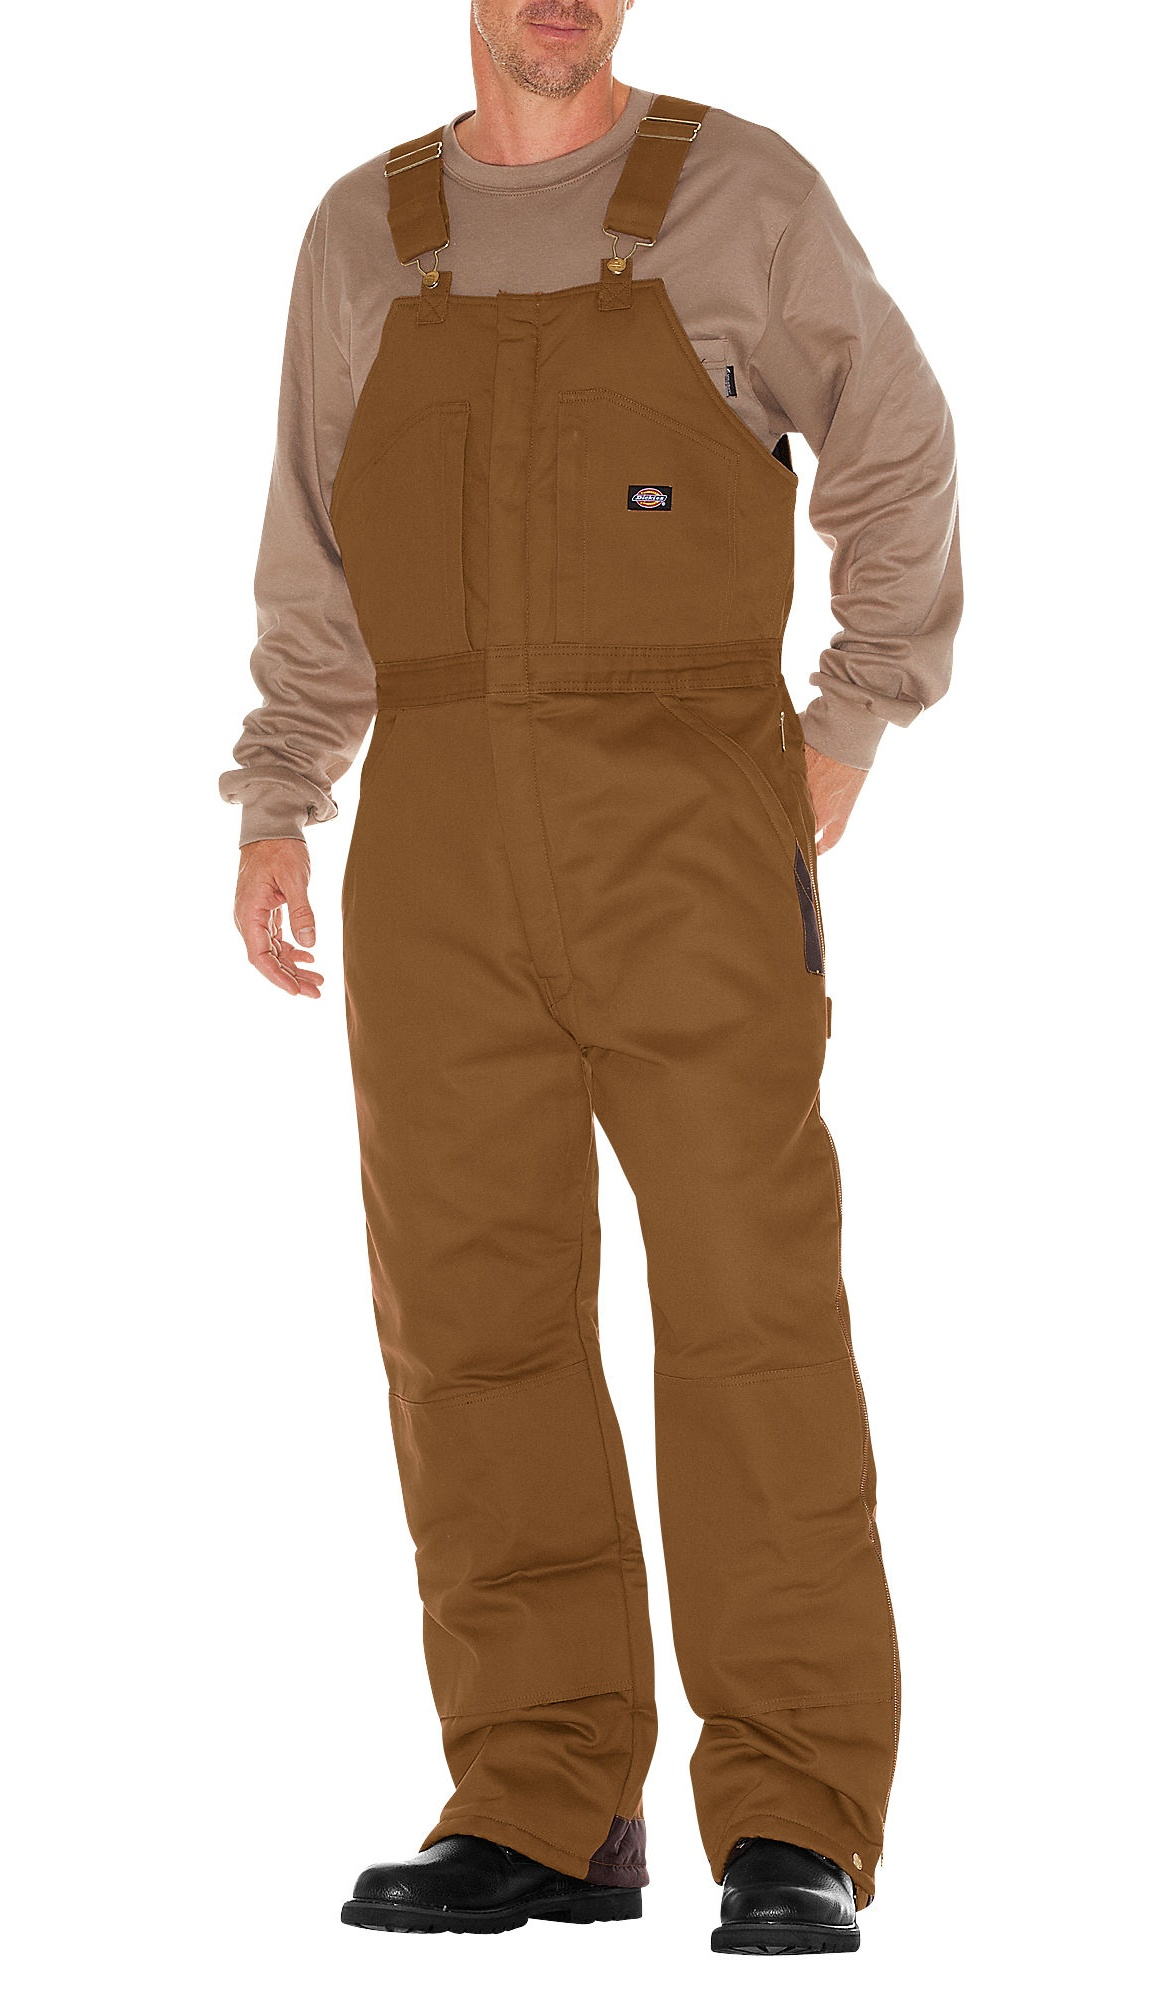 Dickies Mens Duck Insulated Bib Overall, Brown Duck 5X RG by Dickies